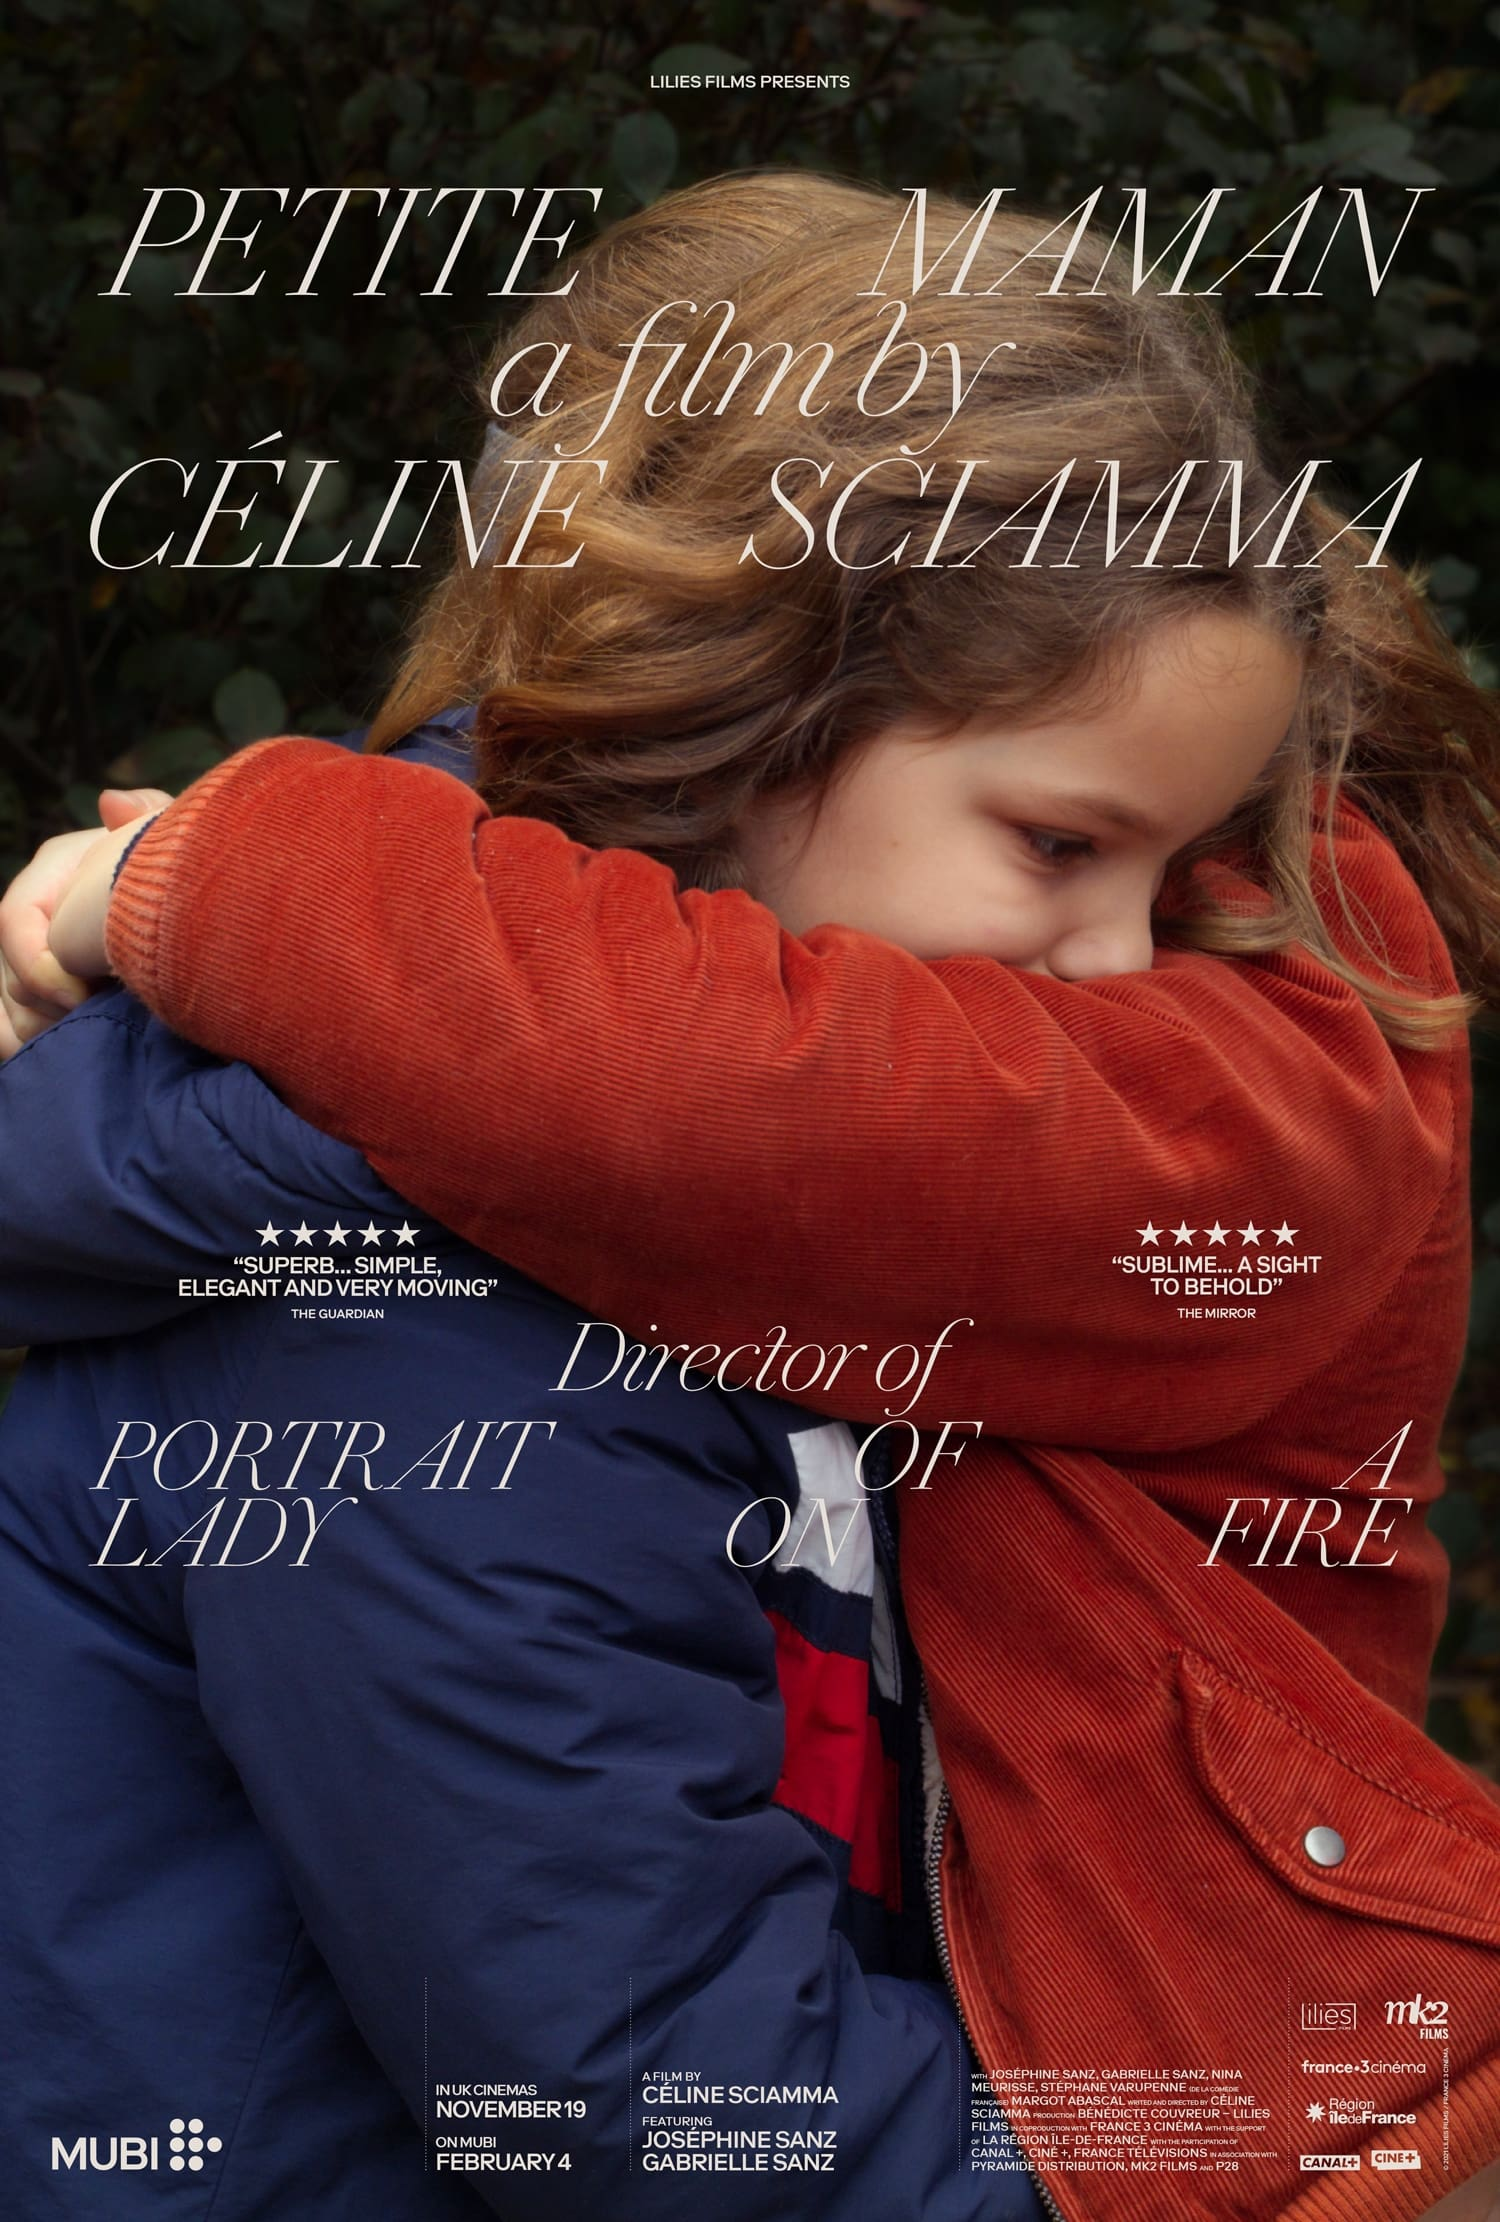 Poster for Petite Maman